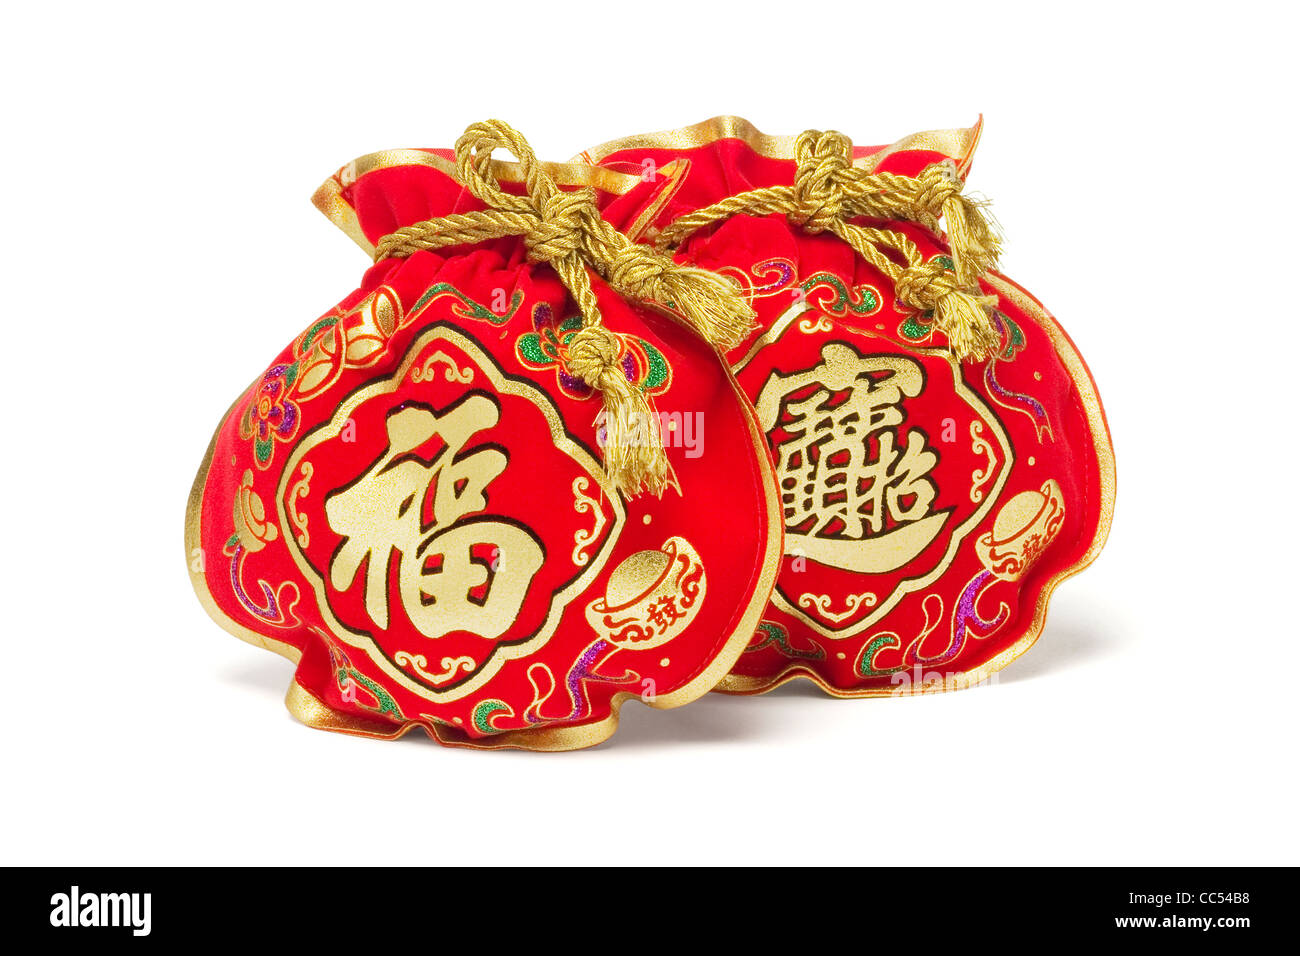 Two Chinese New Year Gift Bags on White Background - Stock Image